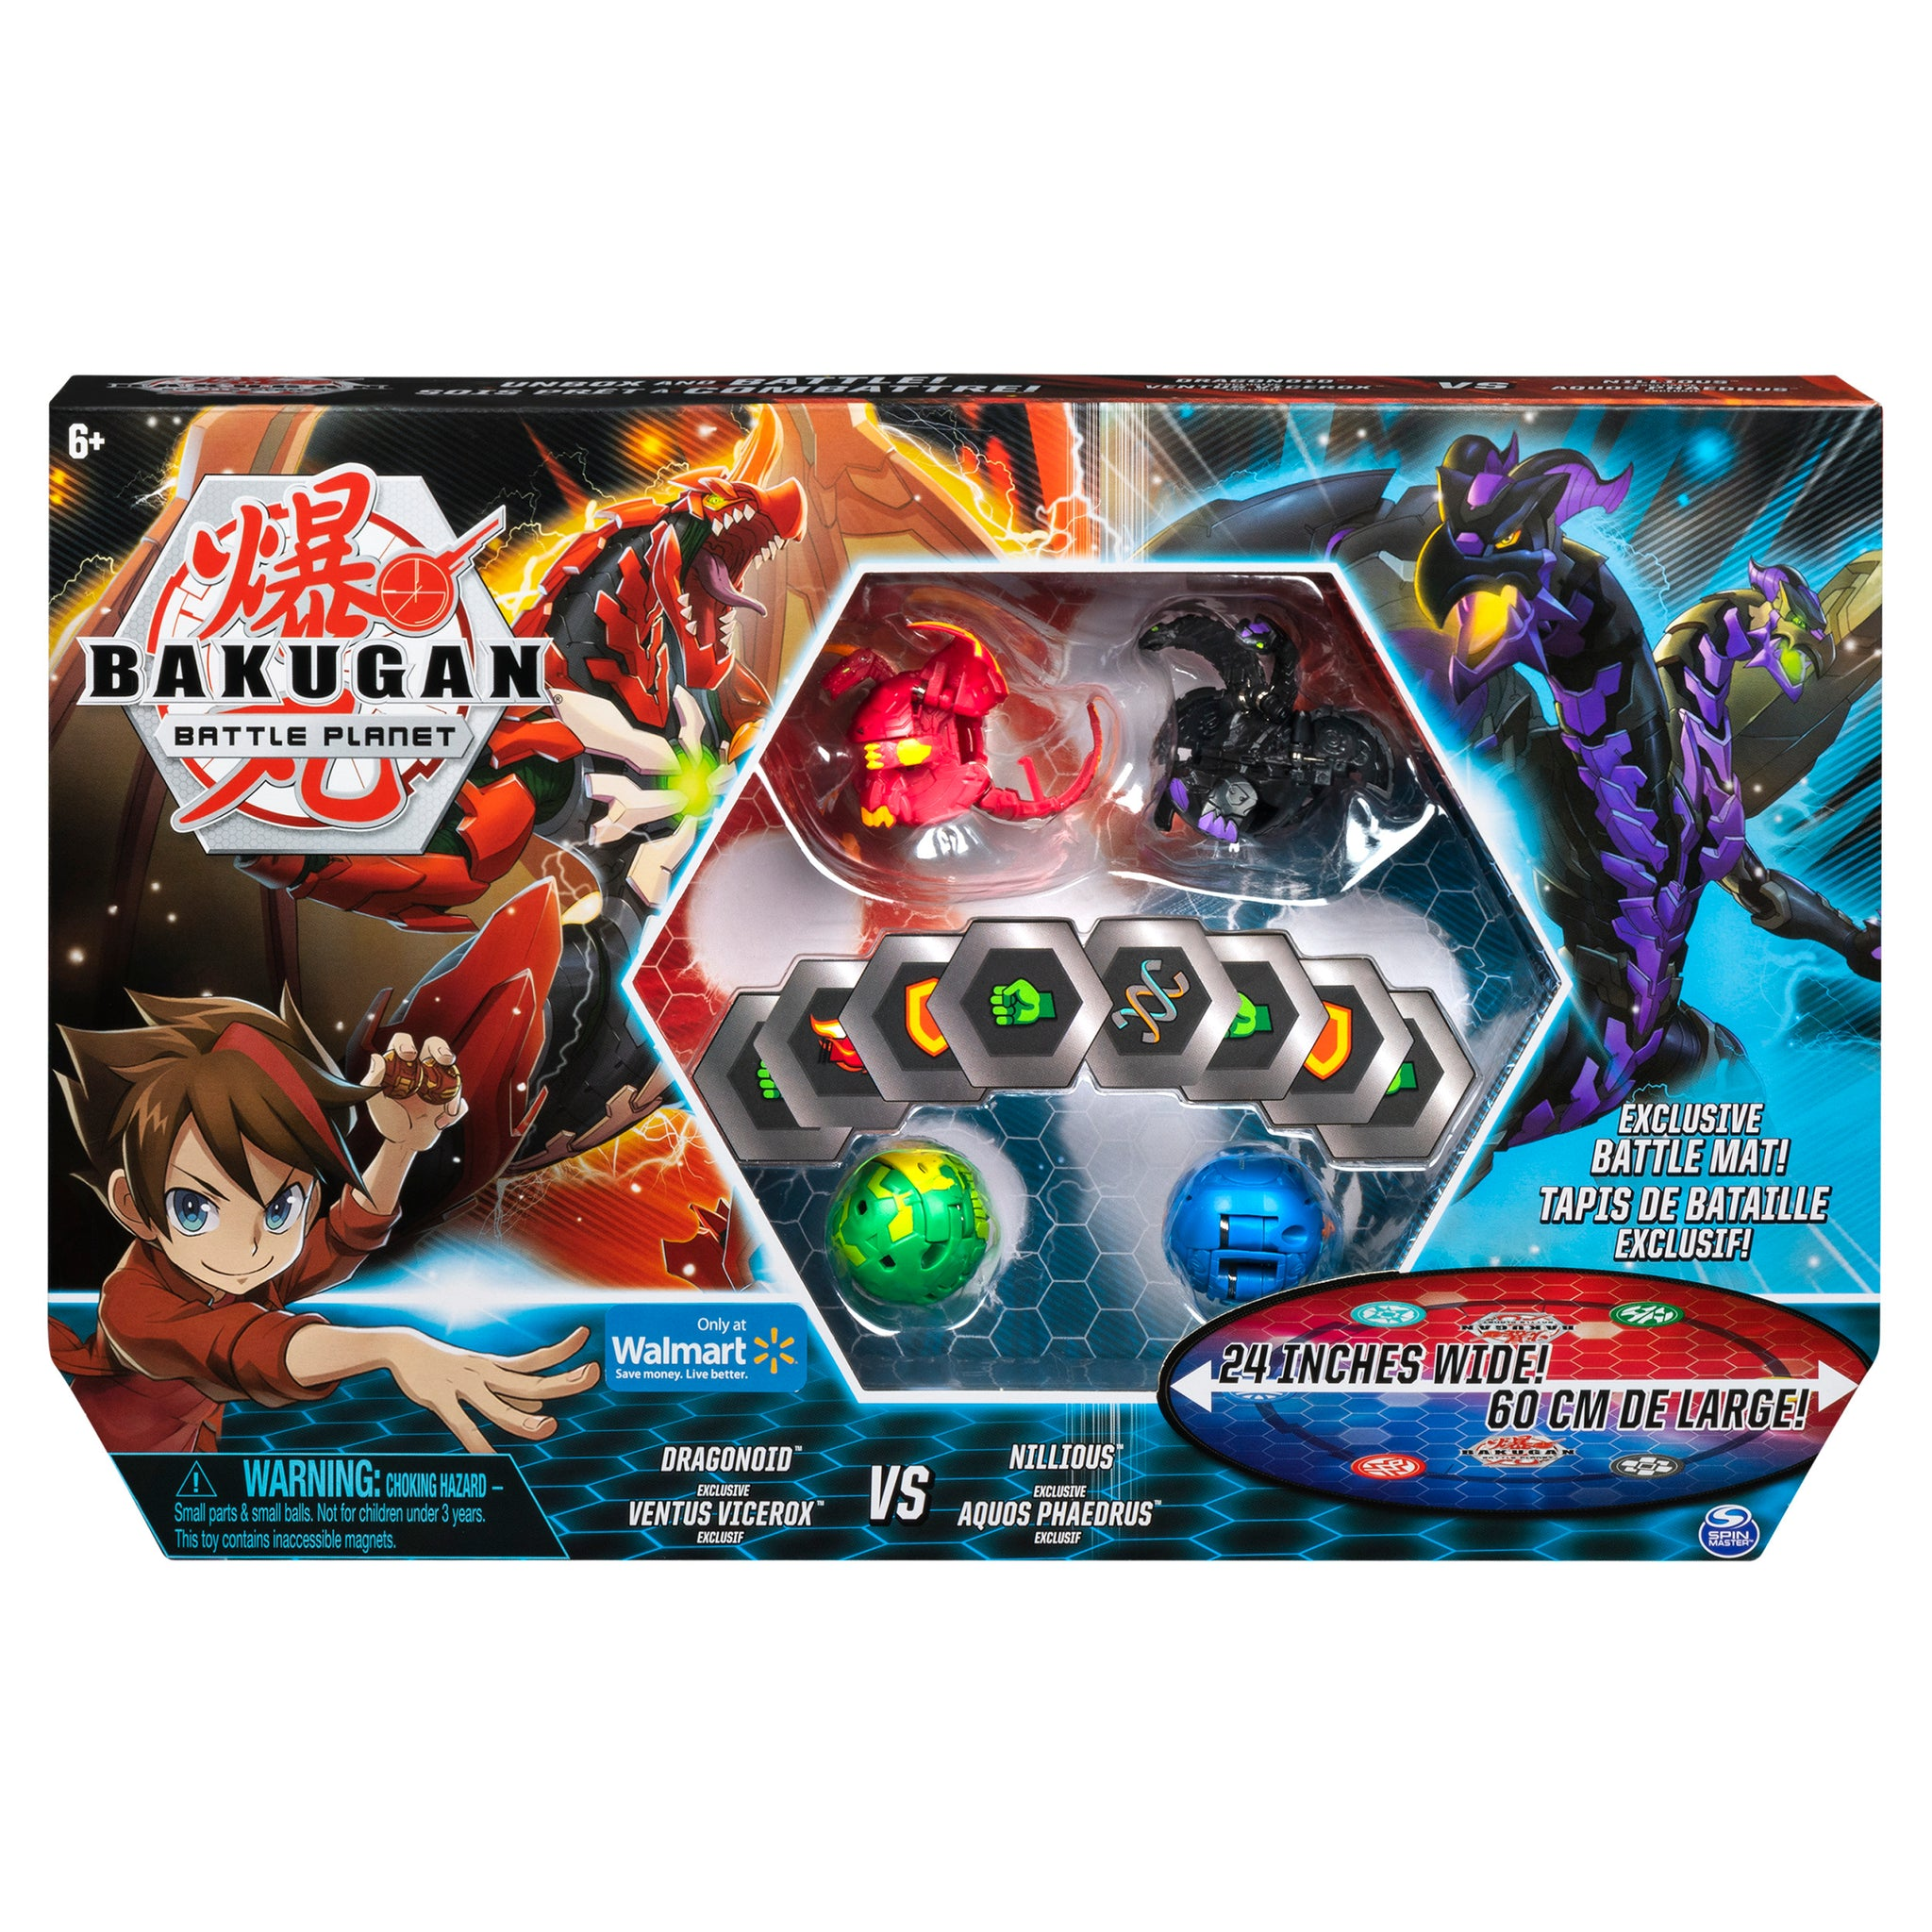 Bakugan, Battle Bundle with 4 Bakugan and Exclusive Battle Mat